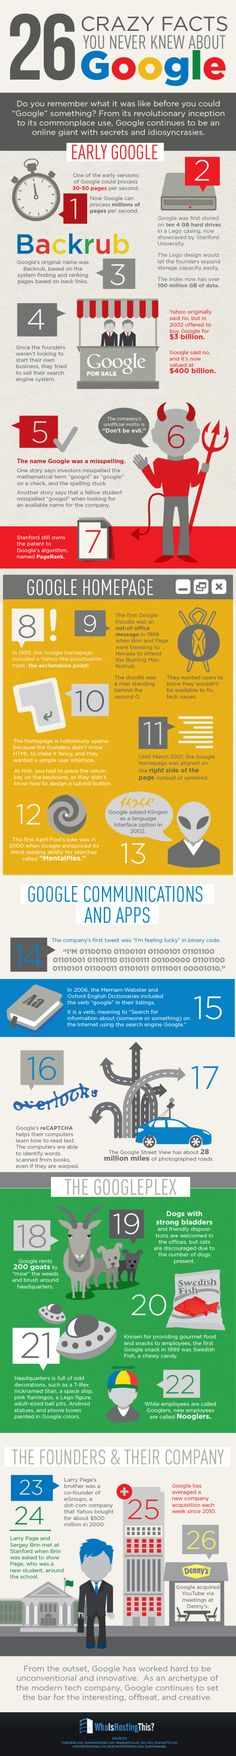 26 Interesting & Surprising Facts about Google | Infographic